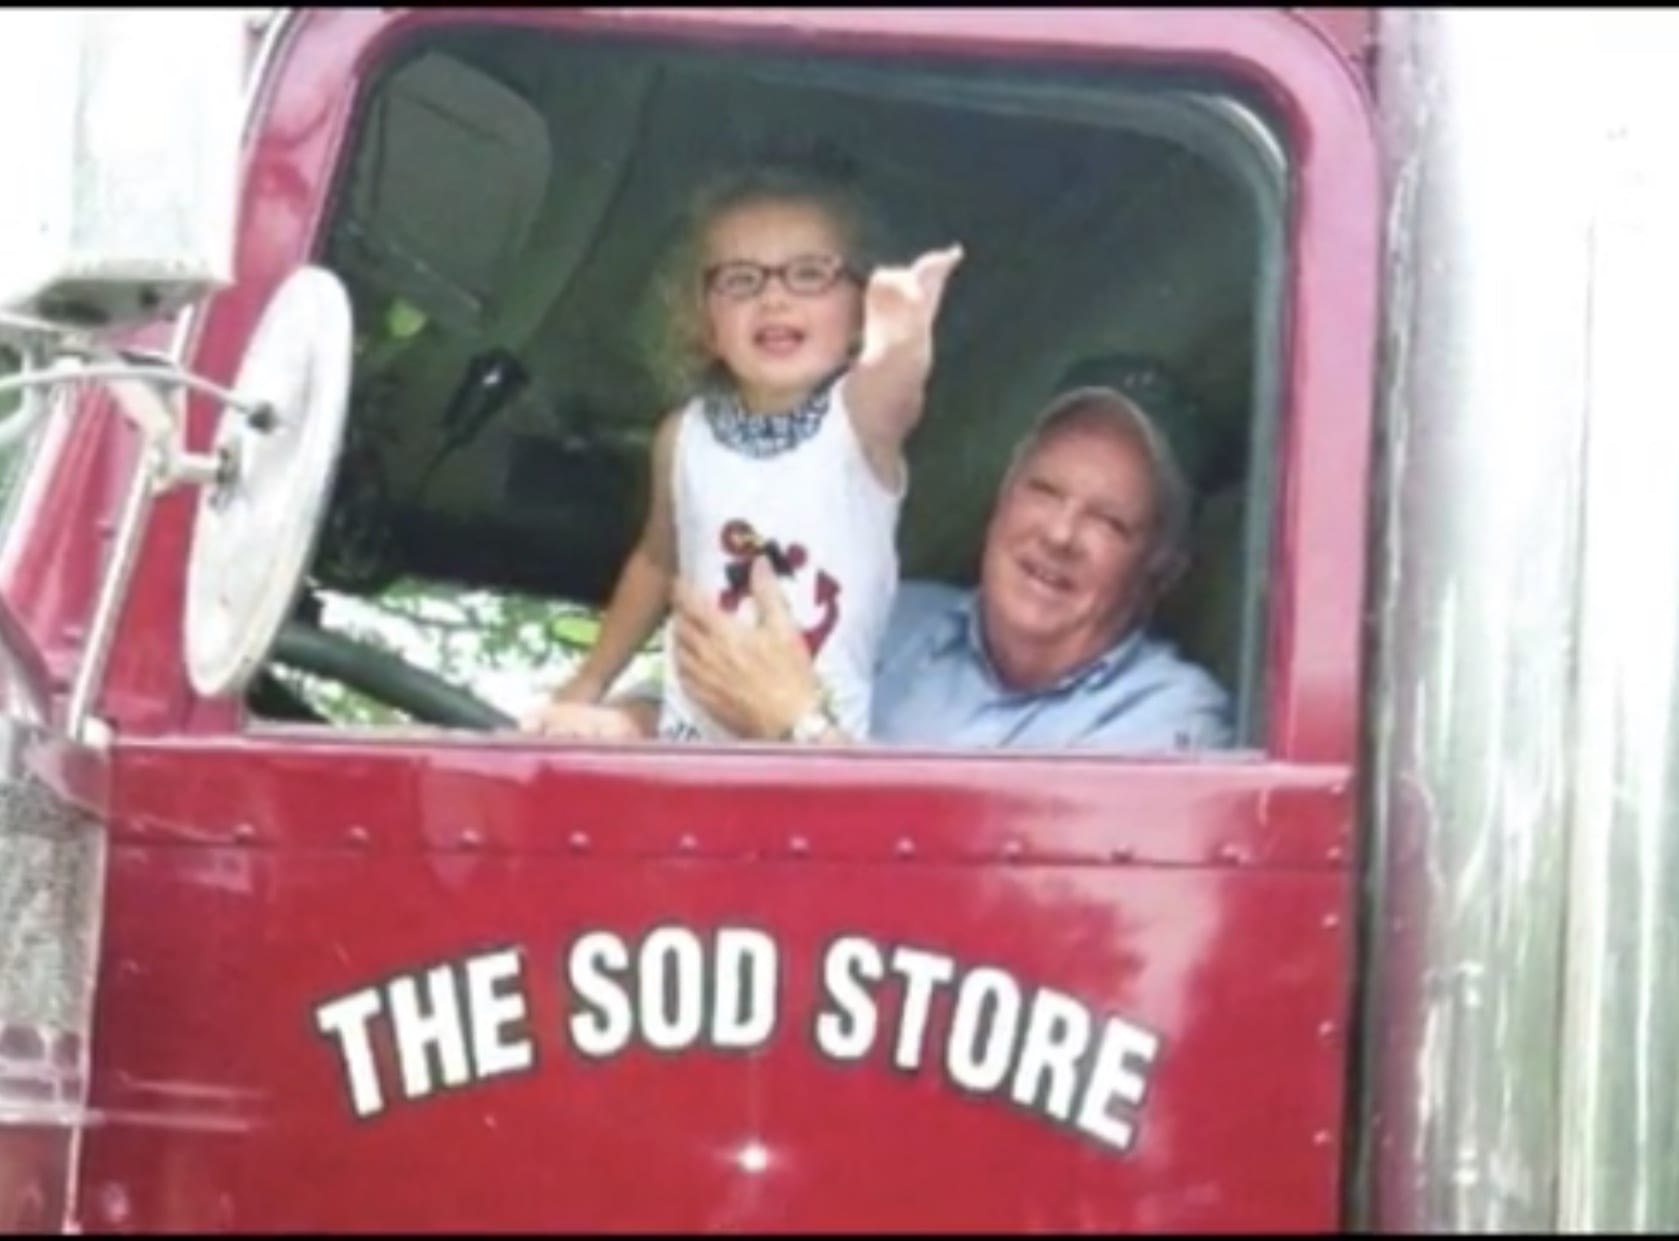 The beginning of sod store